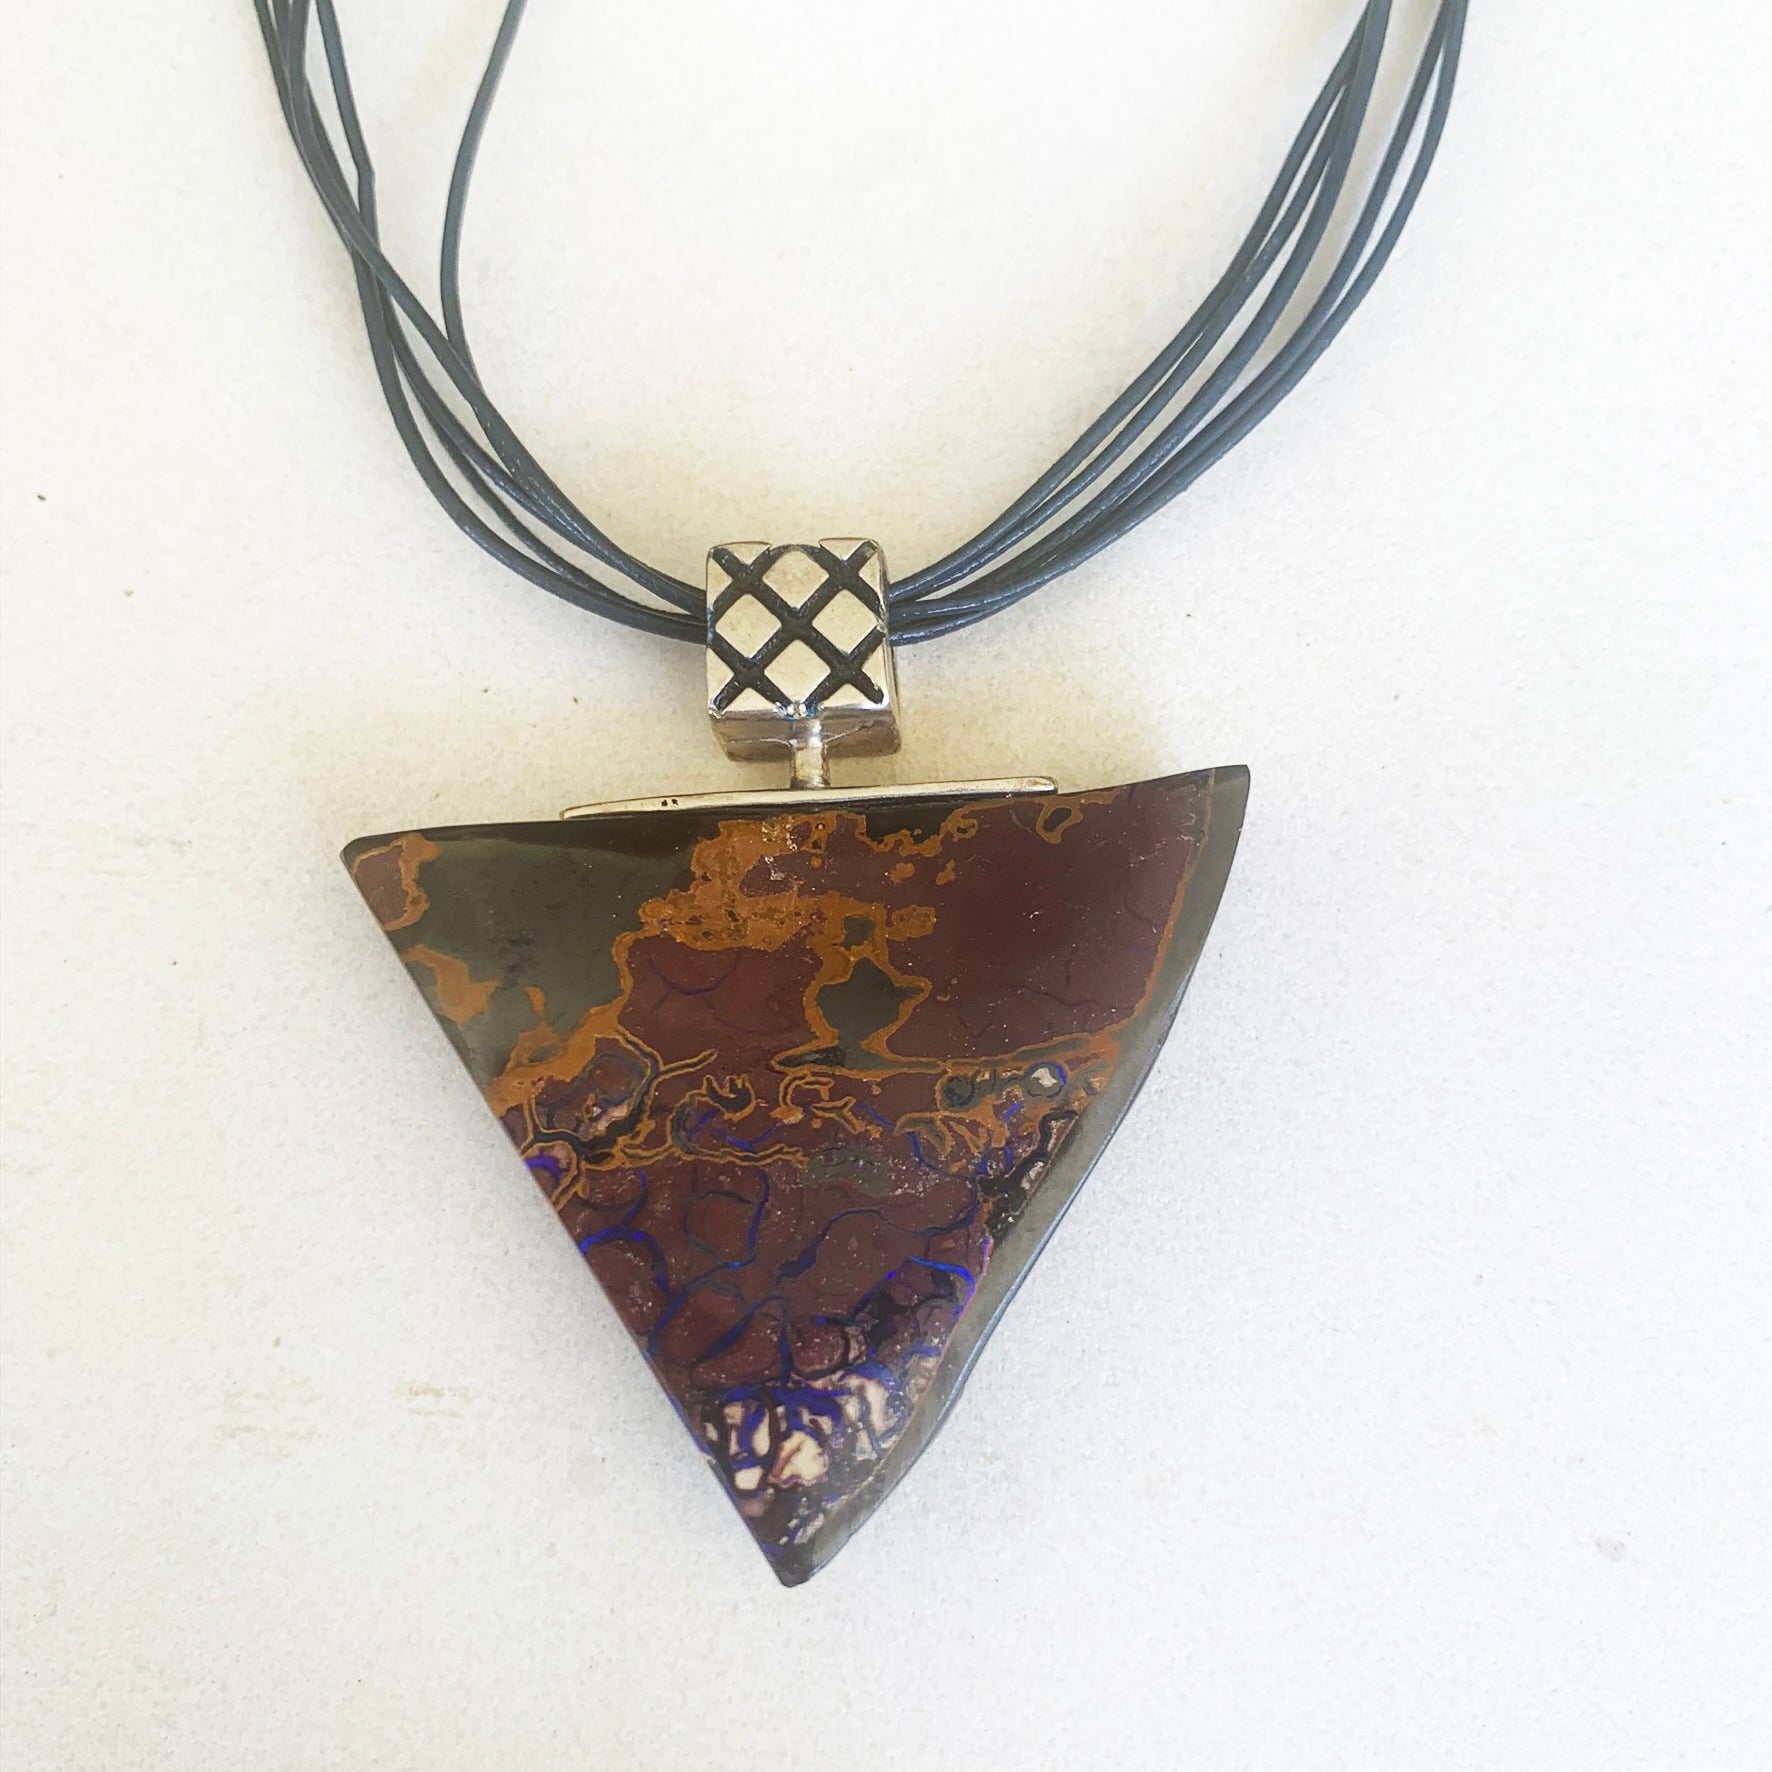 Large triangular boulder opal pendant with artistic pattern